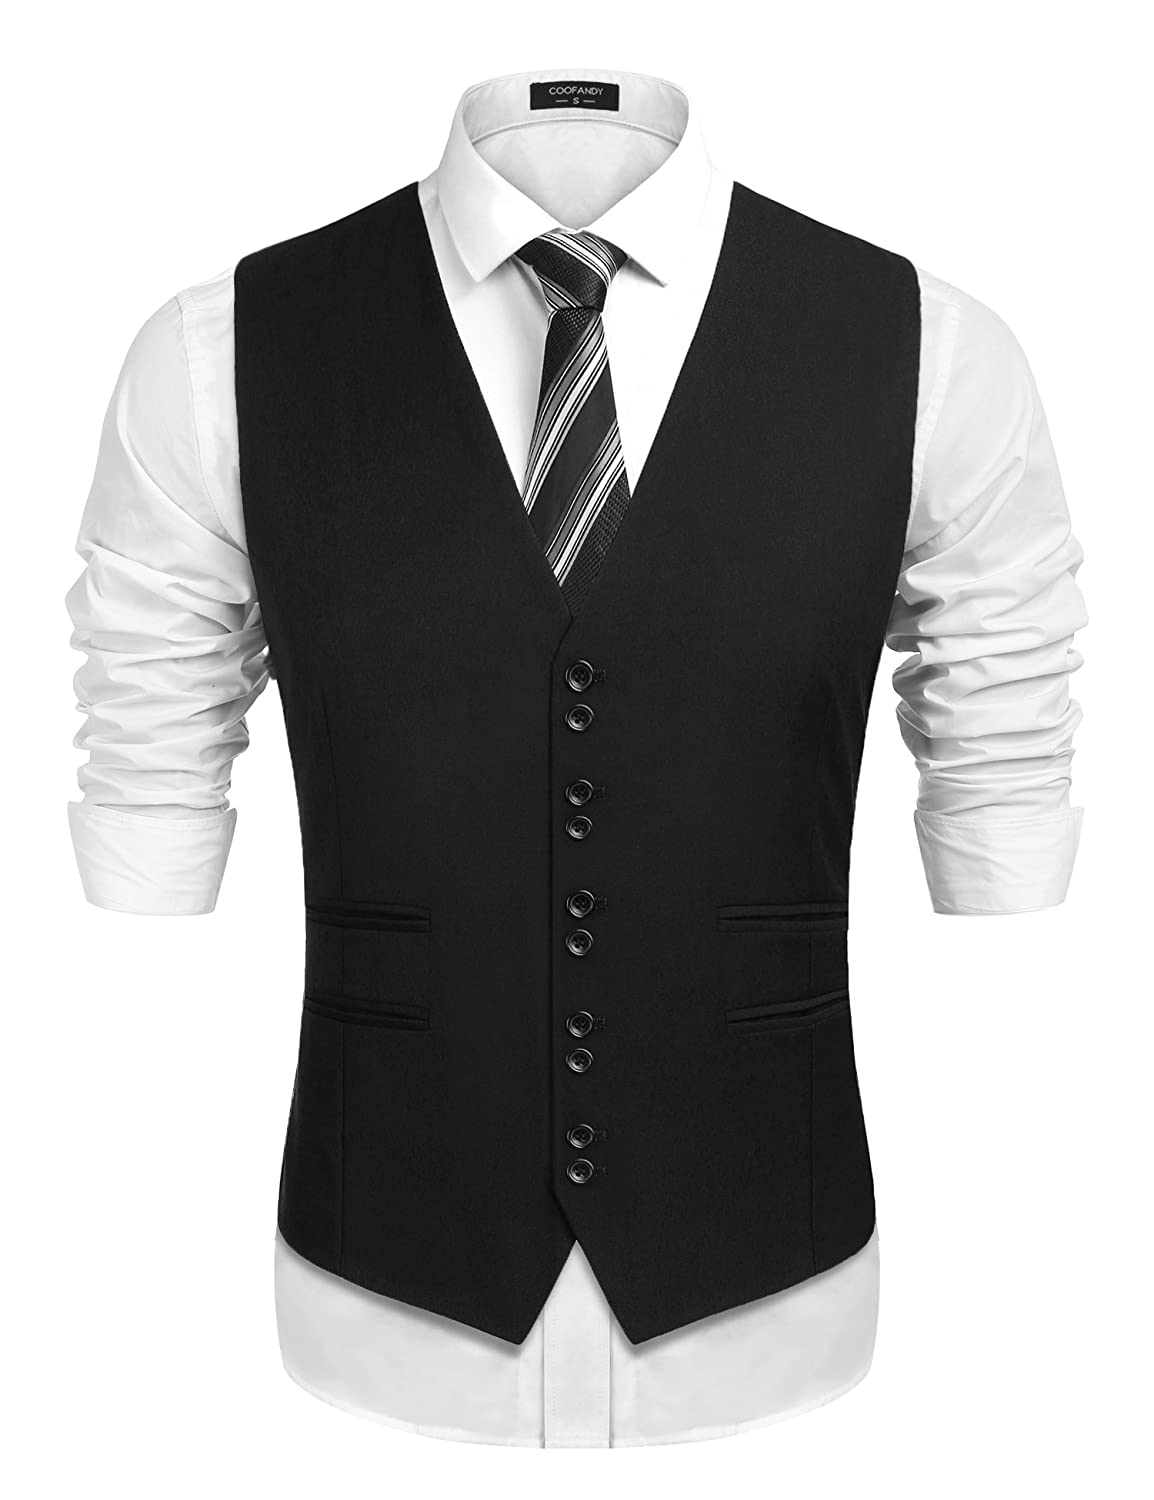 Waistcoat Fit Style Men's Wedding Suit Formal Vest Coofandy 1920's Skinny Slim 8PwOk0Xn